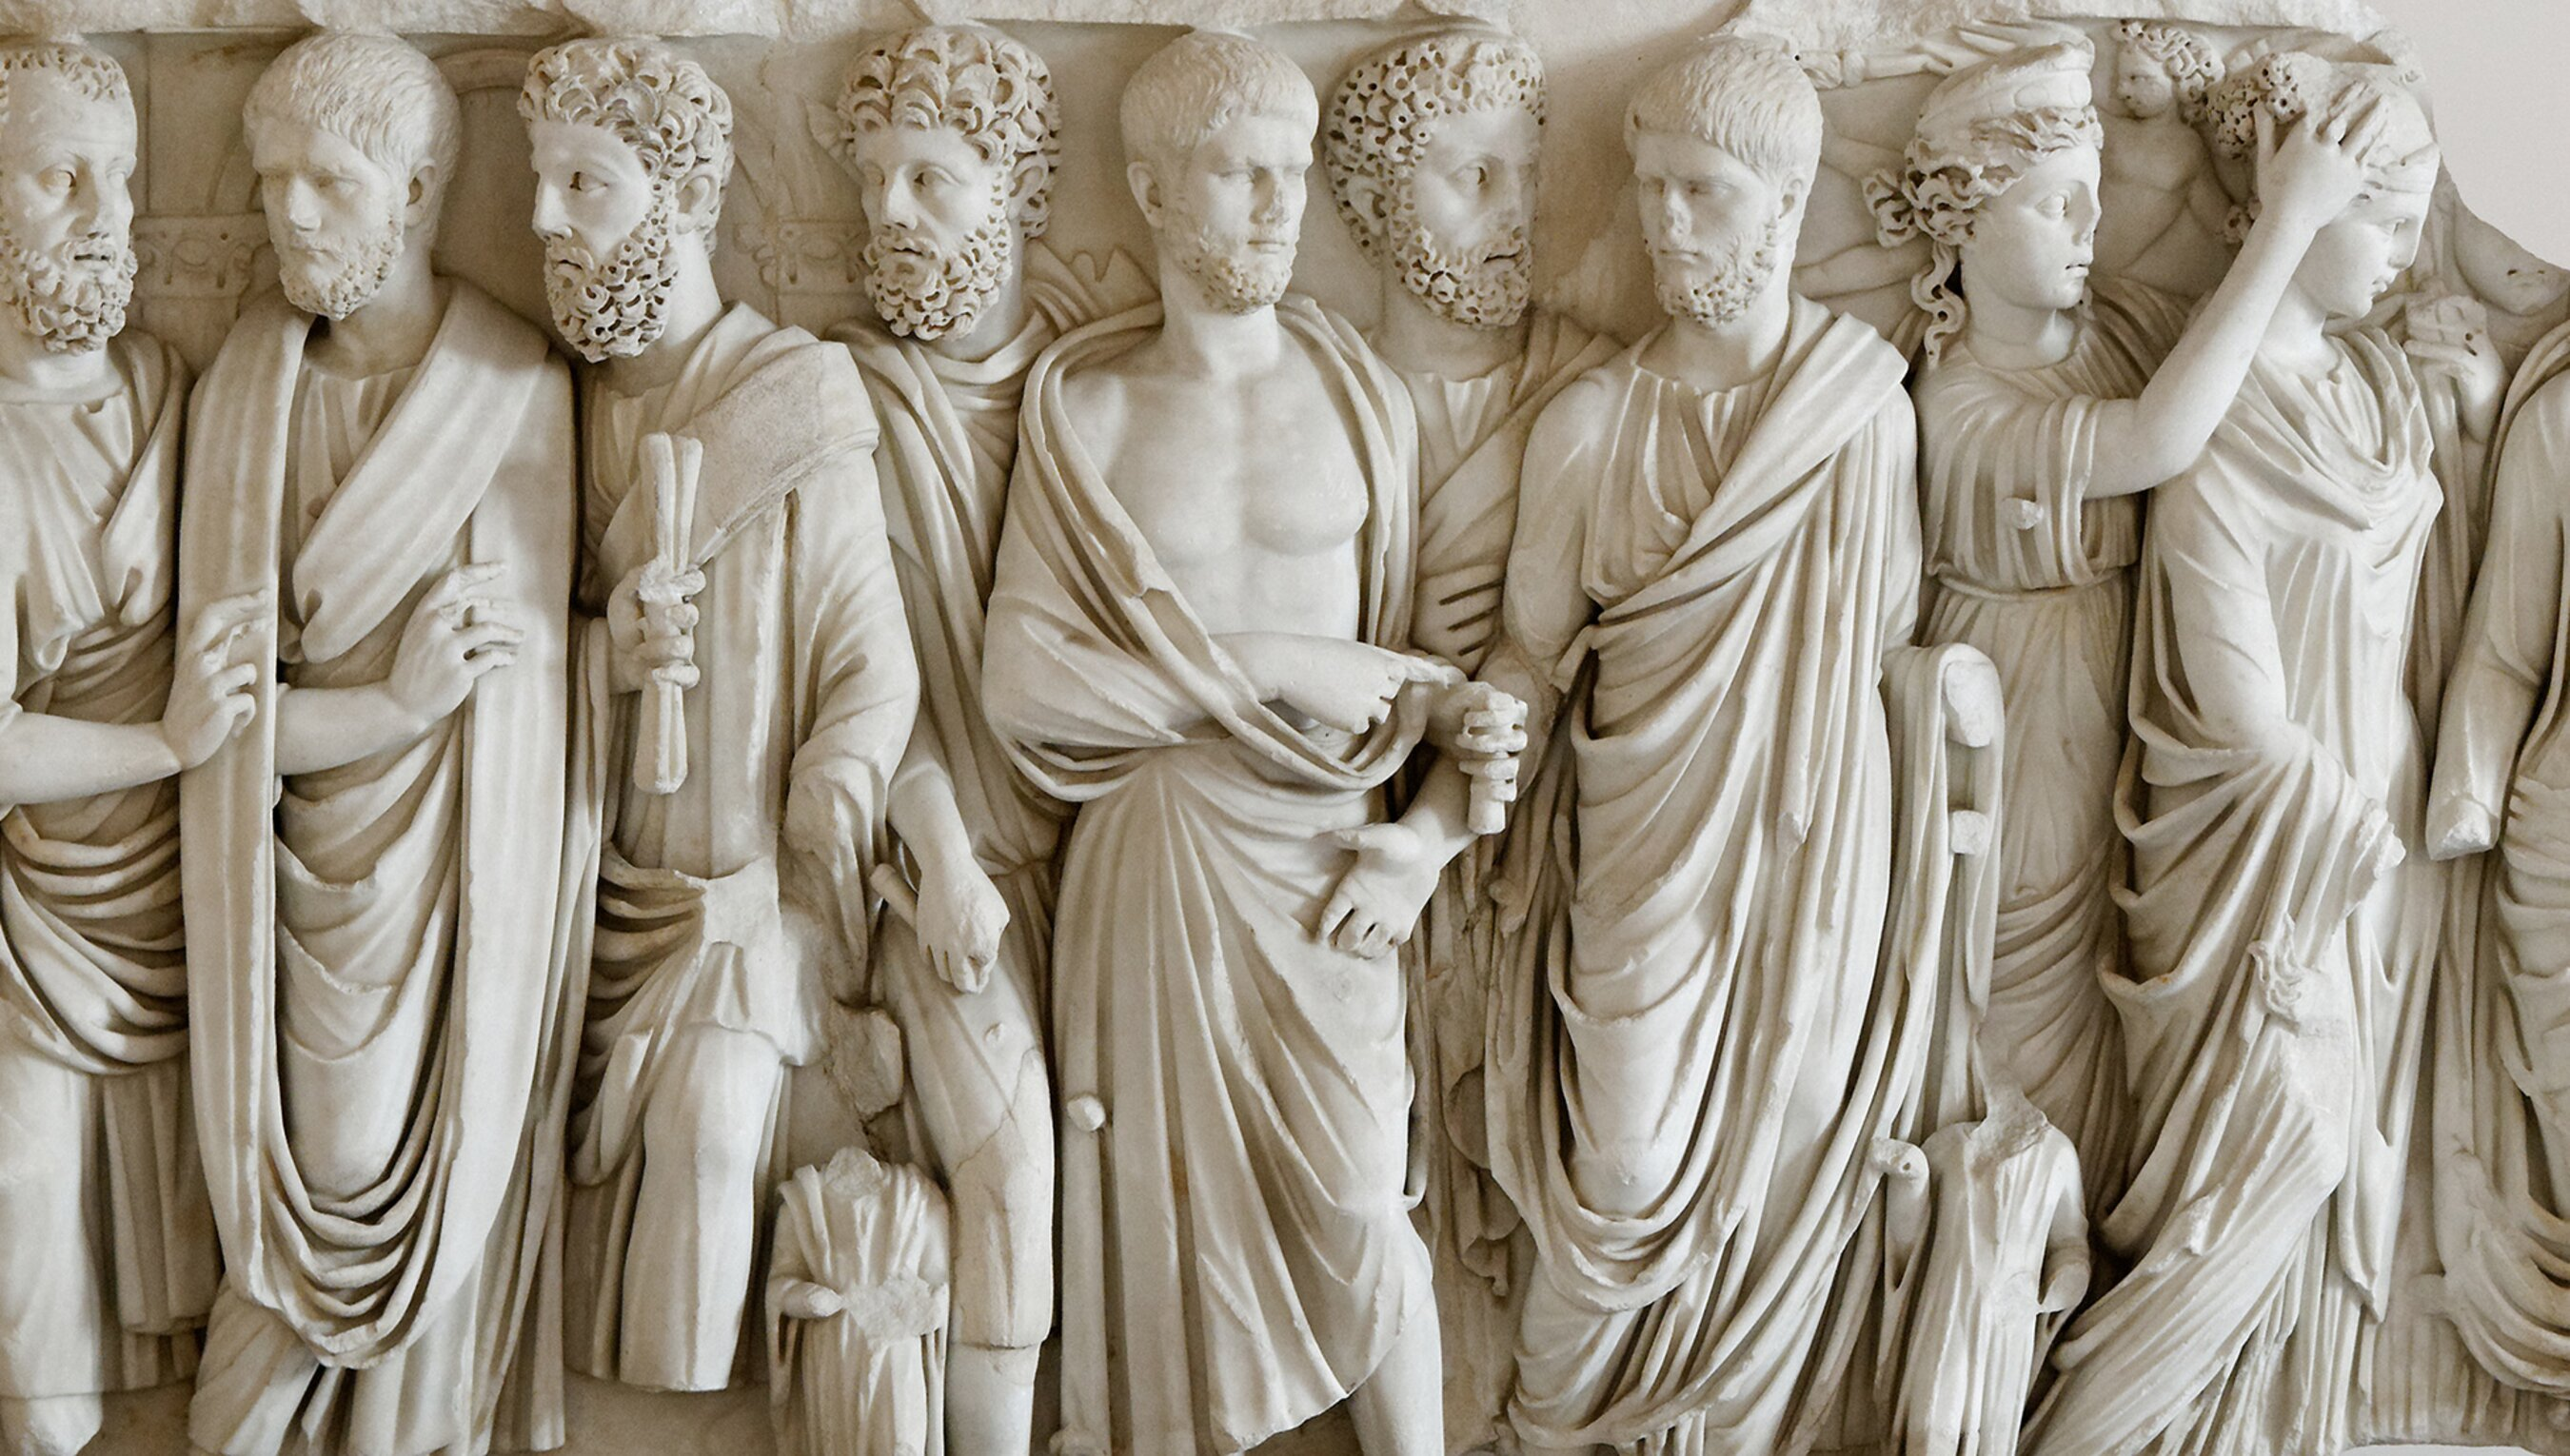 Horace's lyrics of friendship offer hope to our troubled world | Psyche